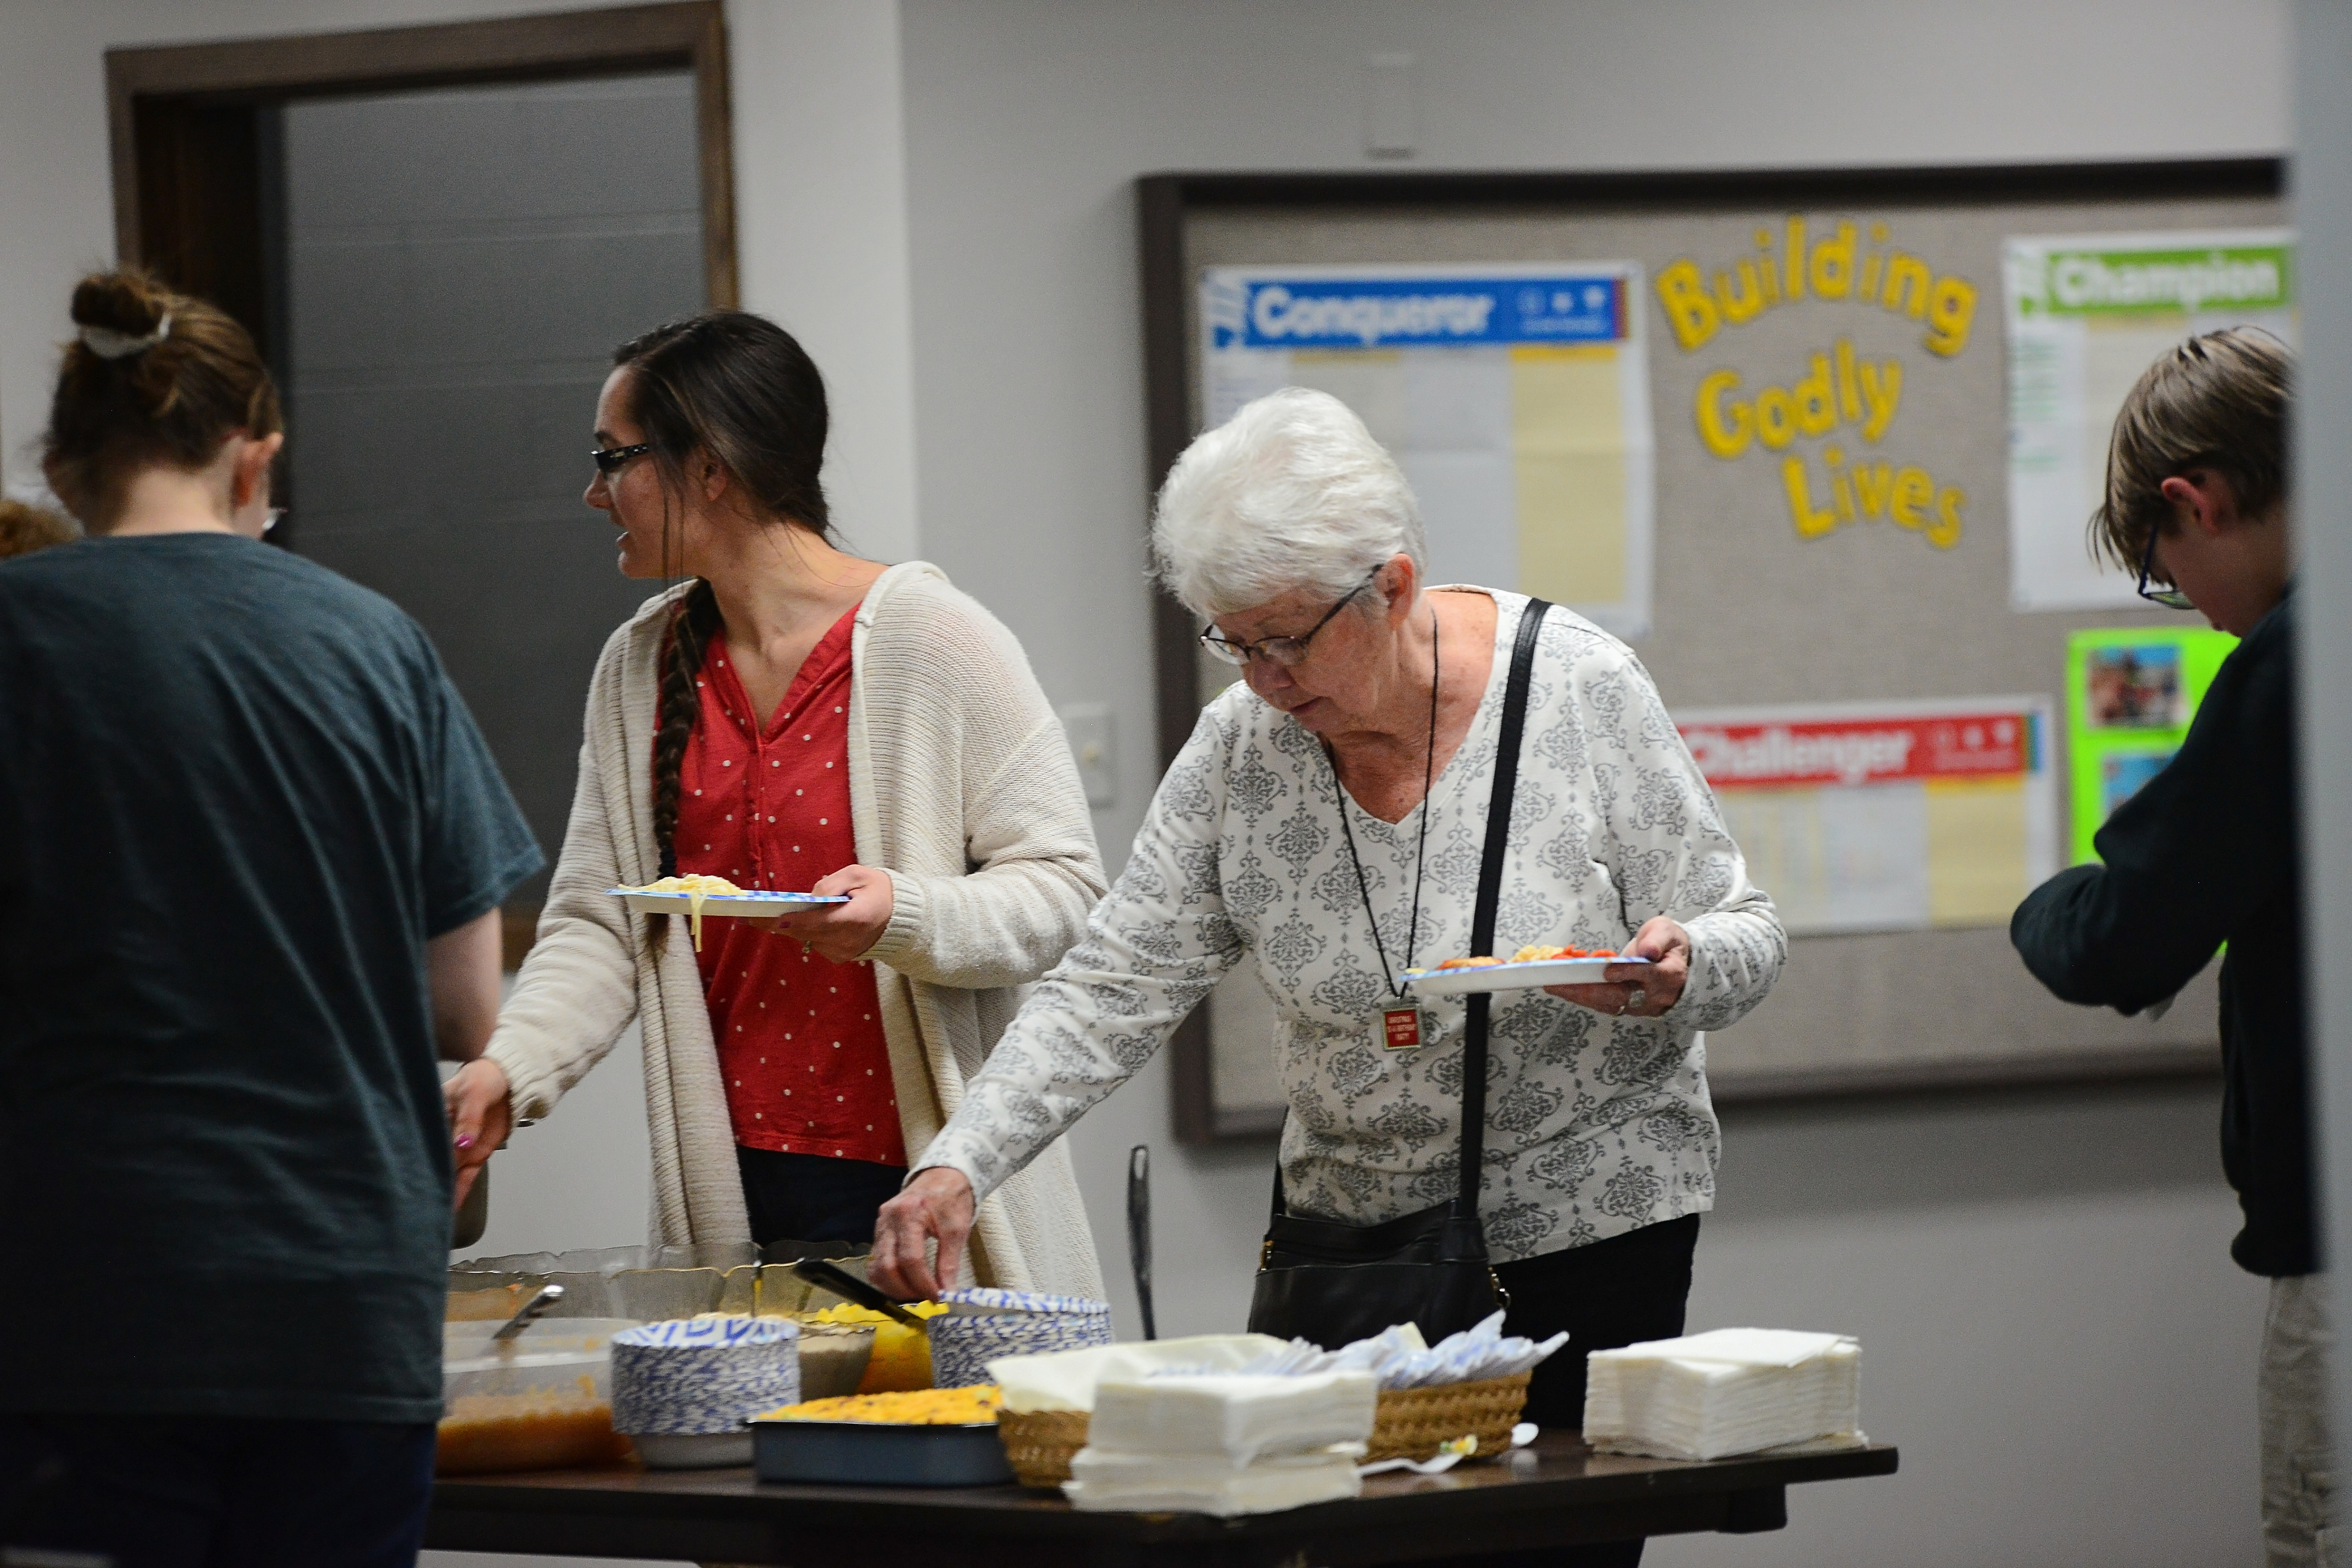 Several adults getting food during event